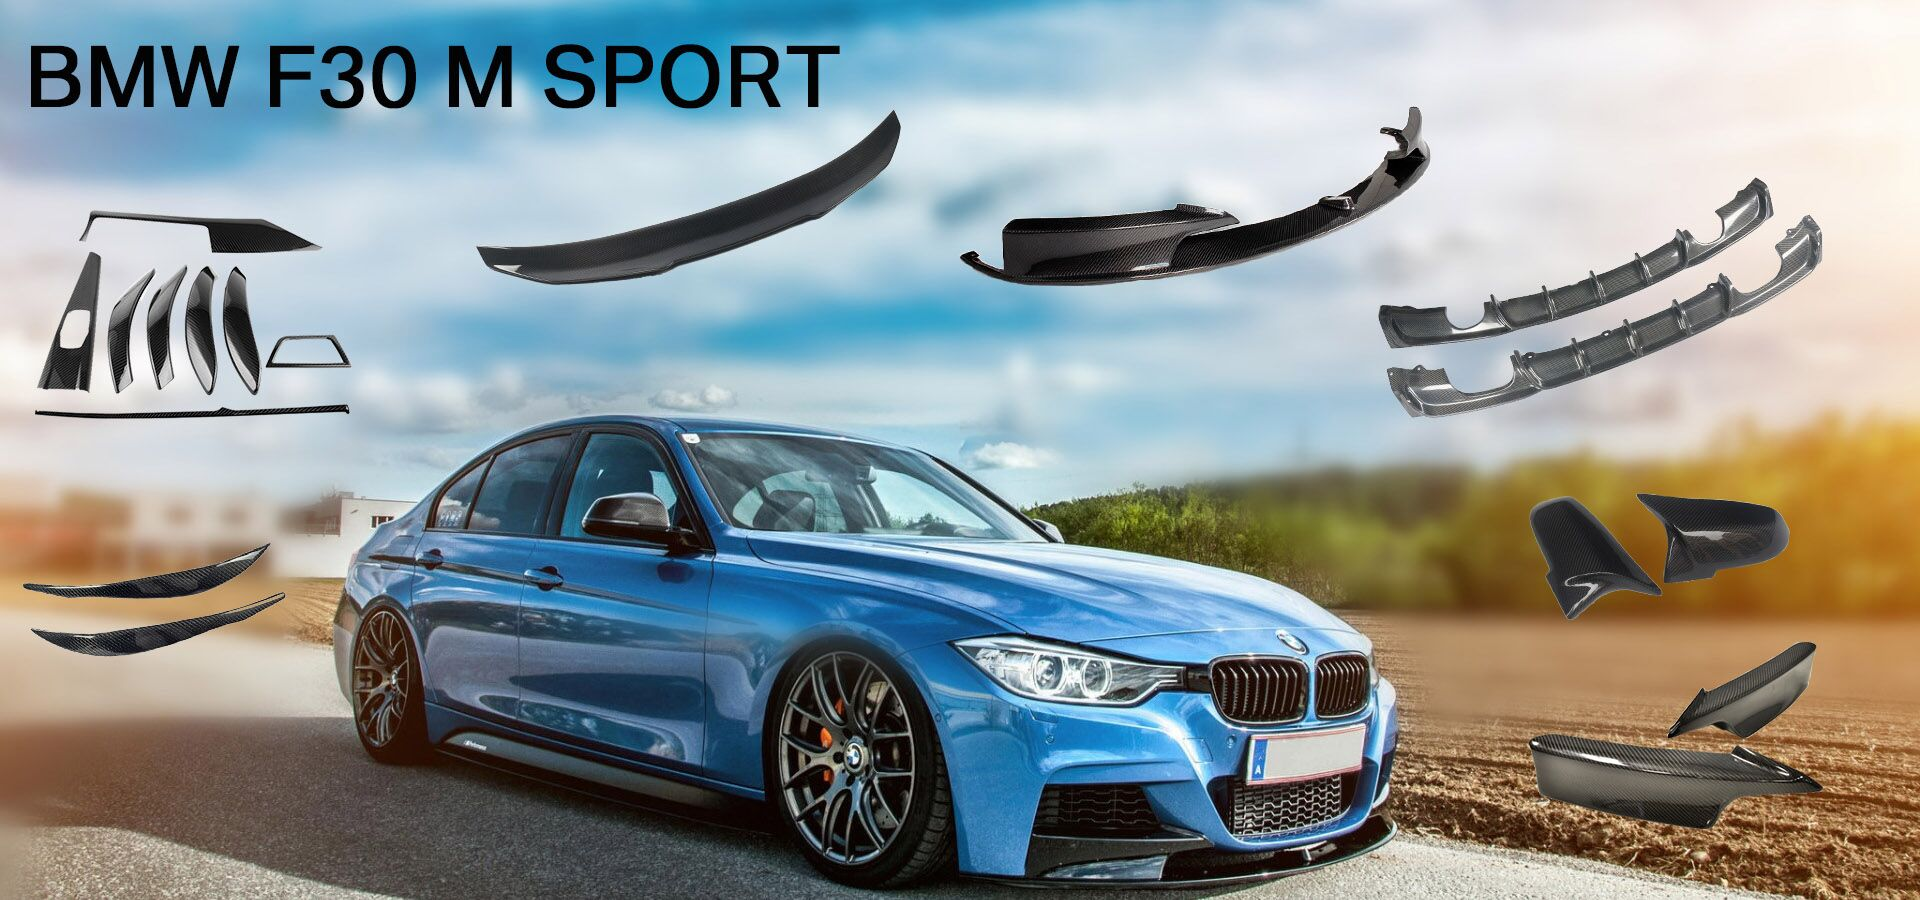 Mp Type For Bmw F30 M Tech 2013 2017 Car Accessories Carbon Front Bumper Lip Buy Carbon Accessories For Bmw F30 Front Carbon Lip Bumper Lip Carbon